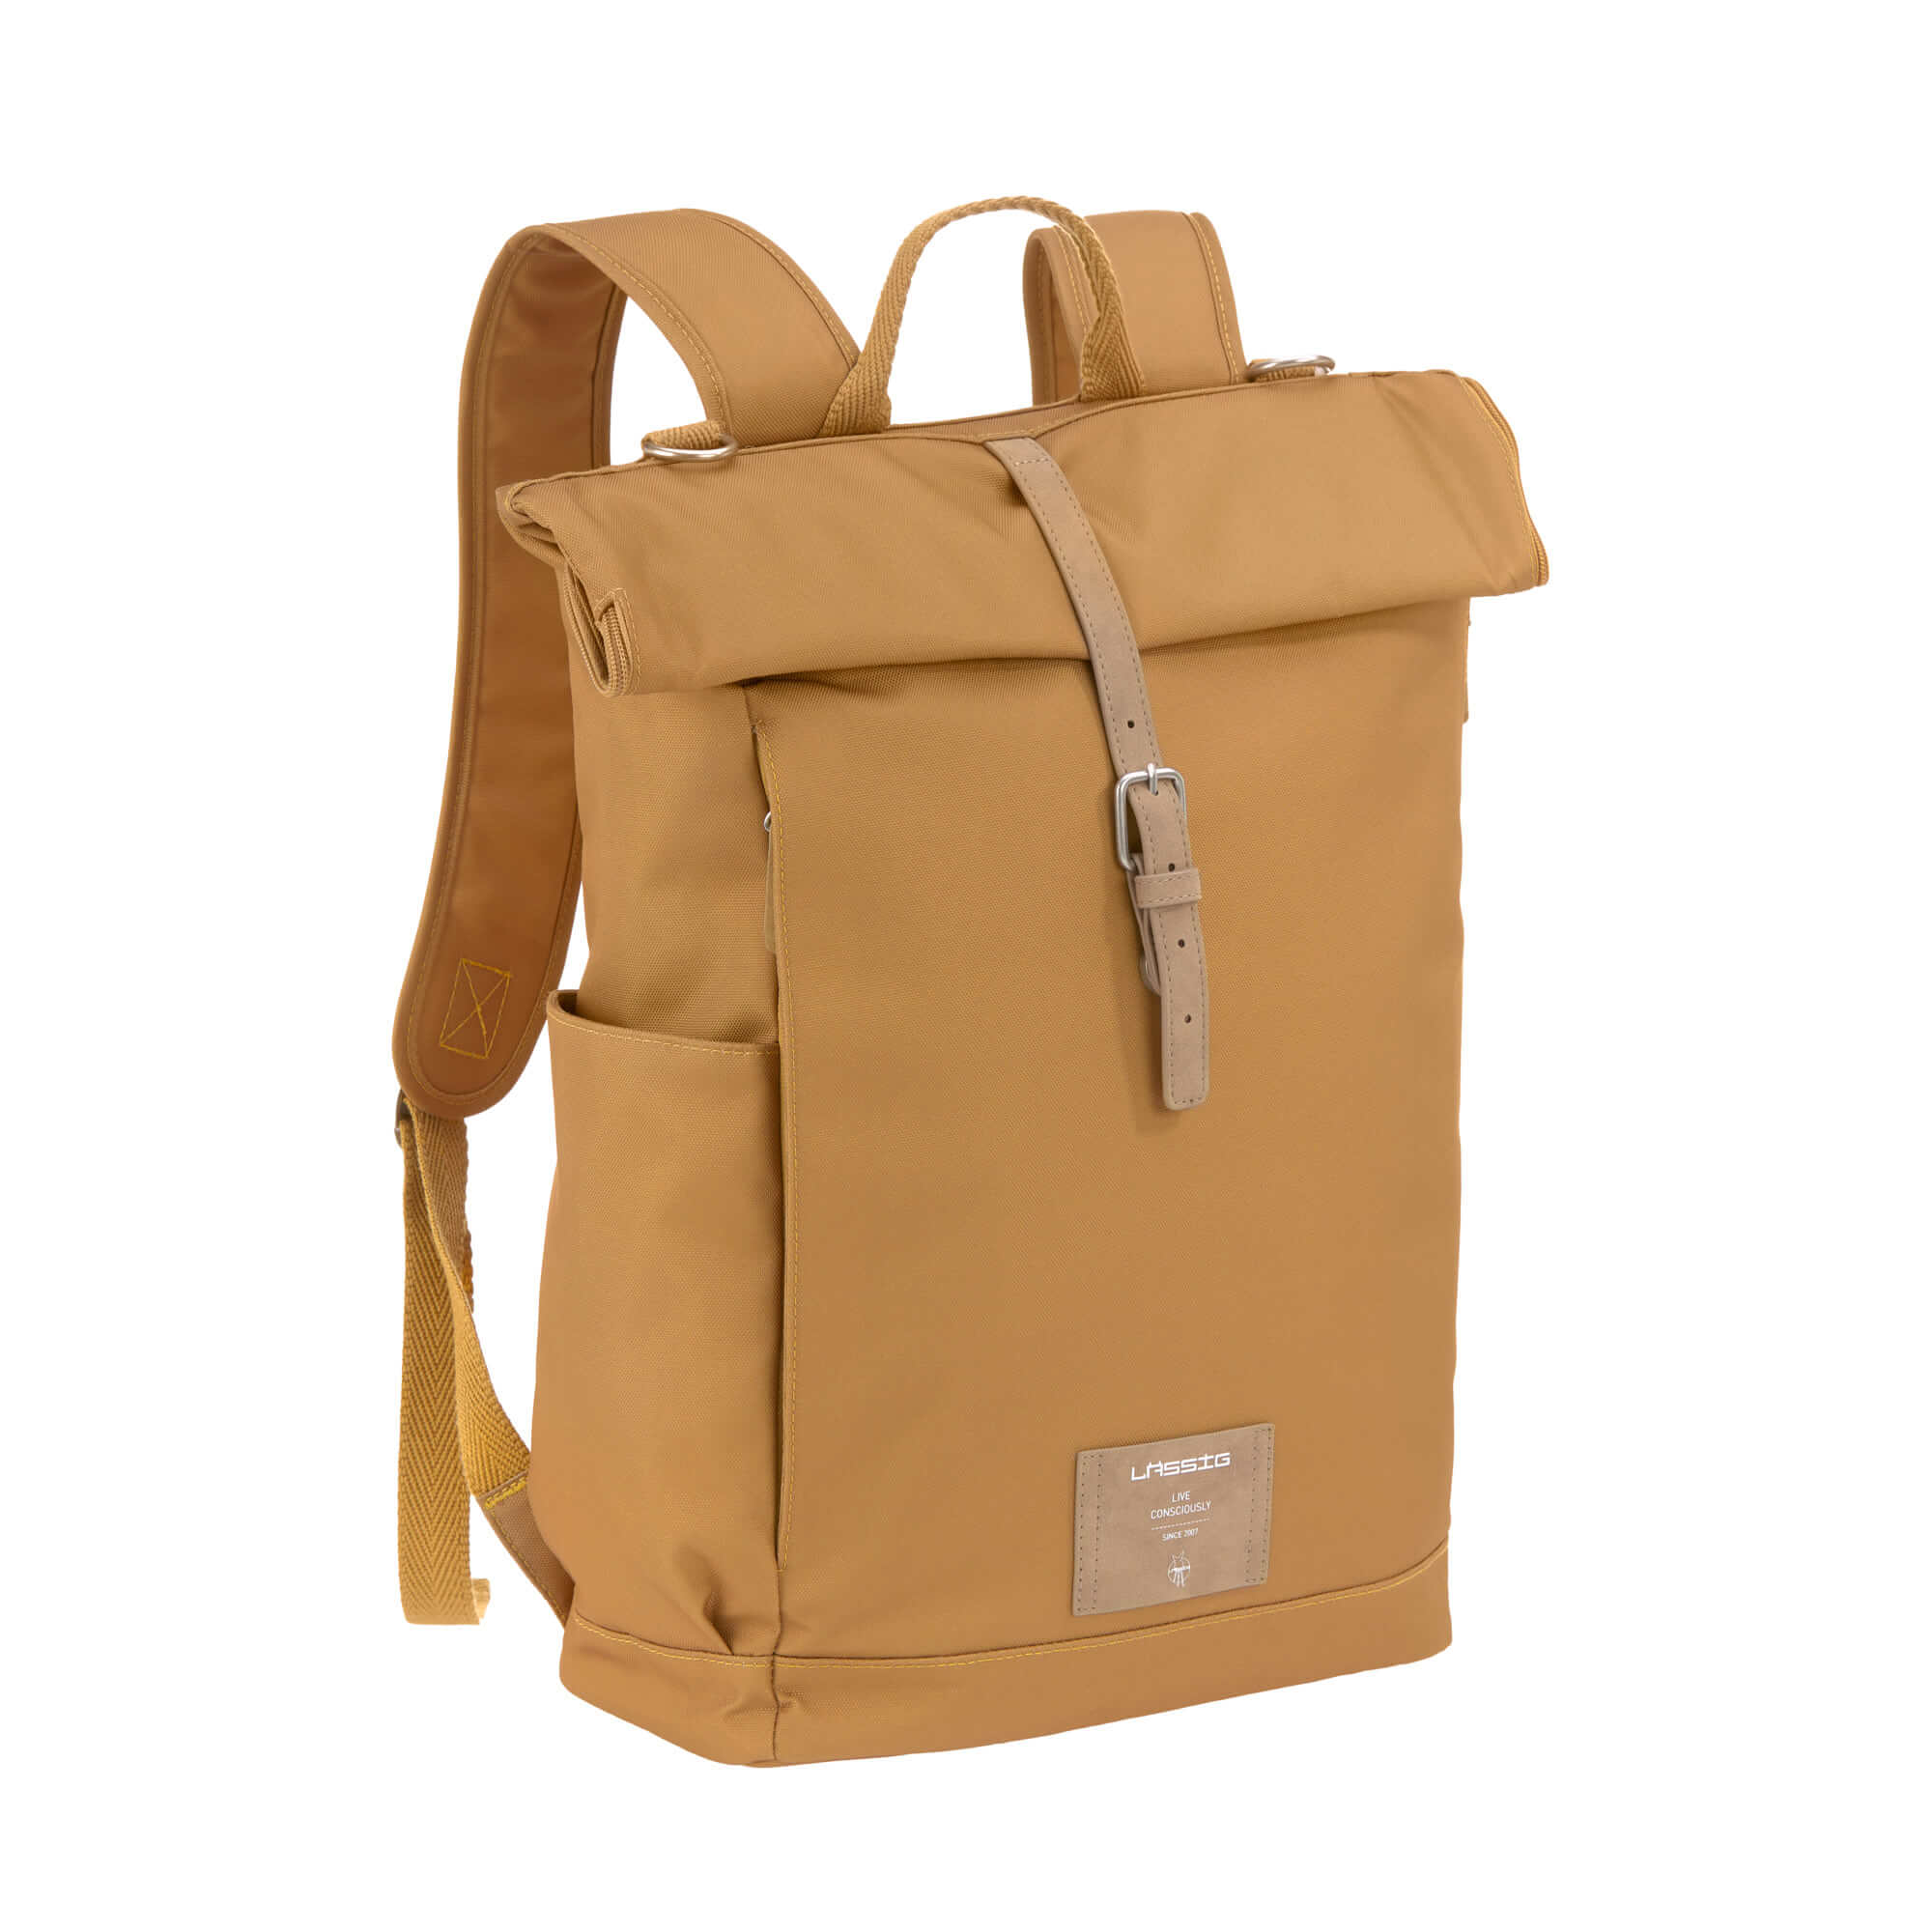 Wickelrucksack - Rolltop Backpack - Curry - Lässig